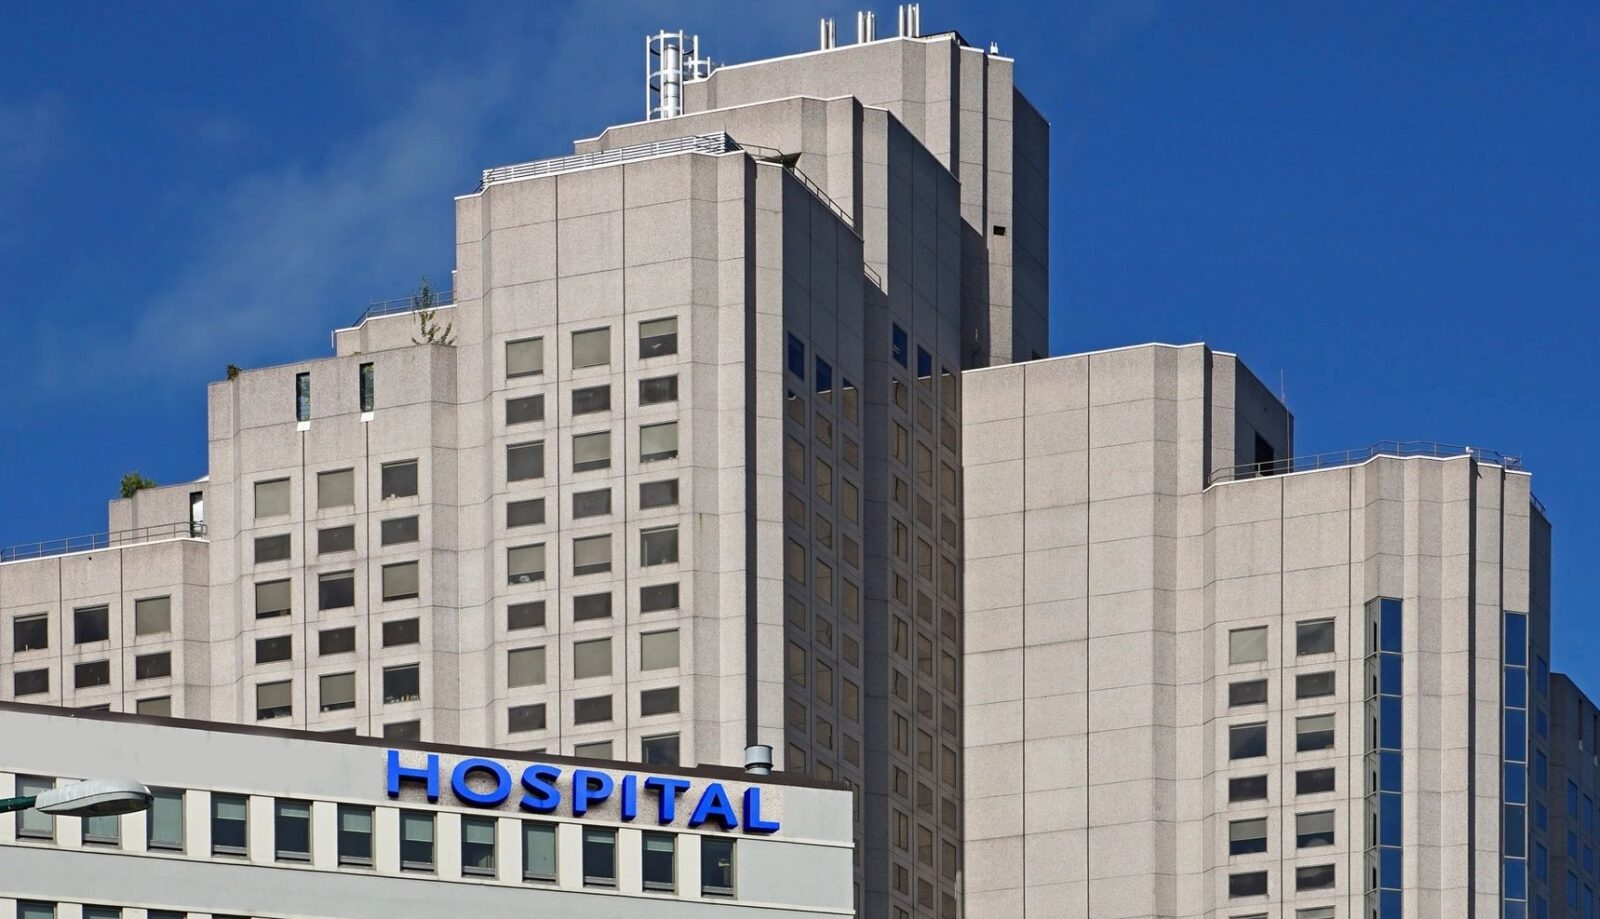 tall white facade buildings against a blue sky; one building has the word hospital in blue letters